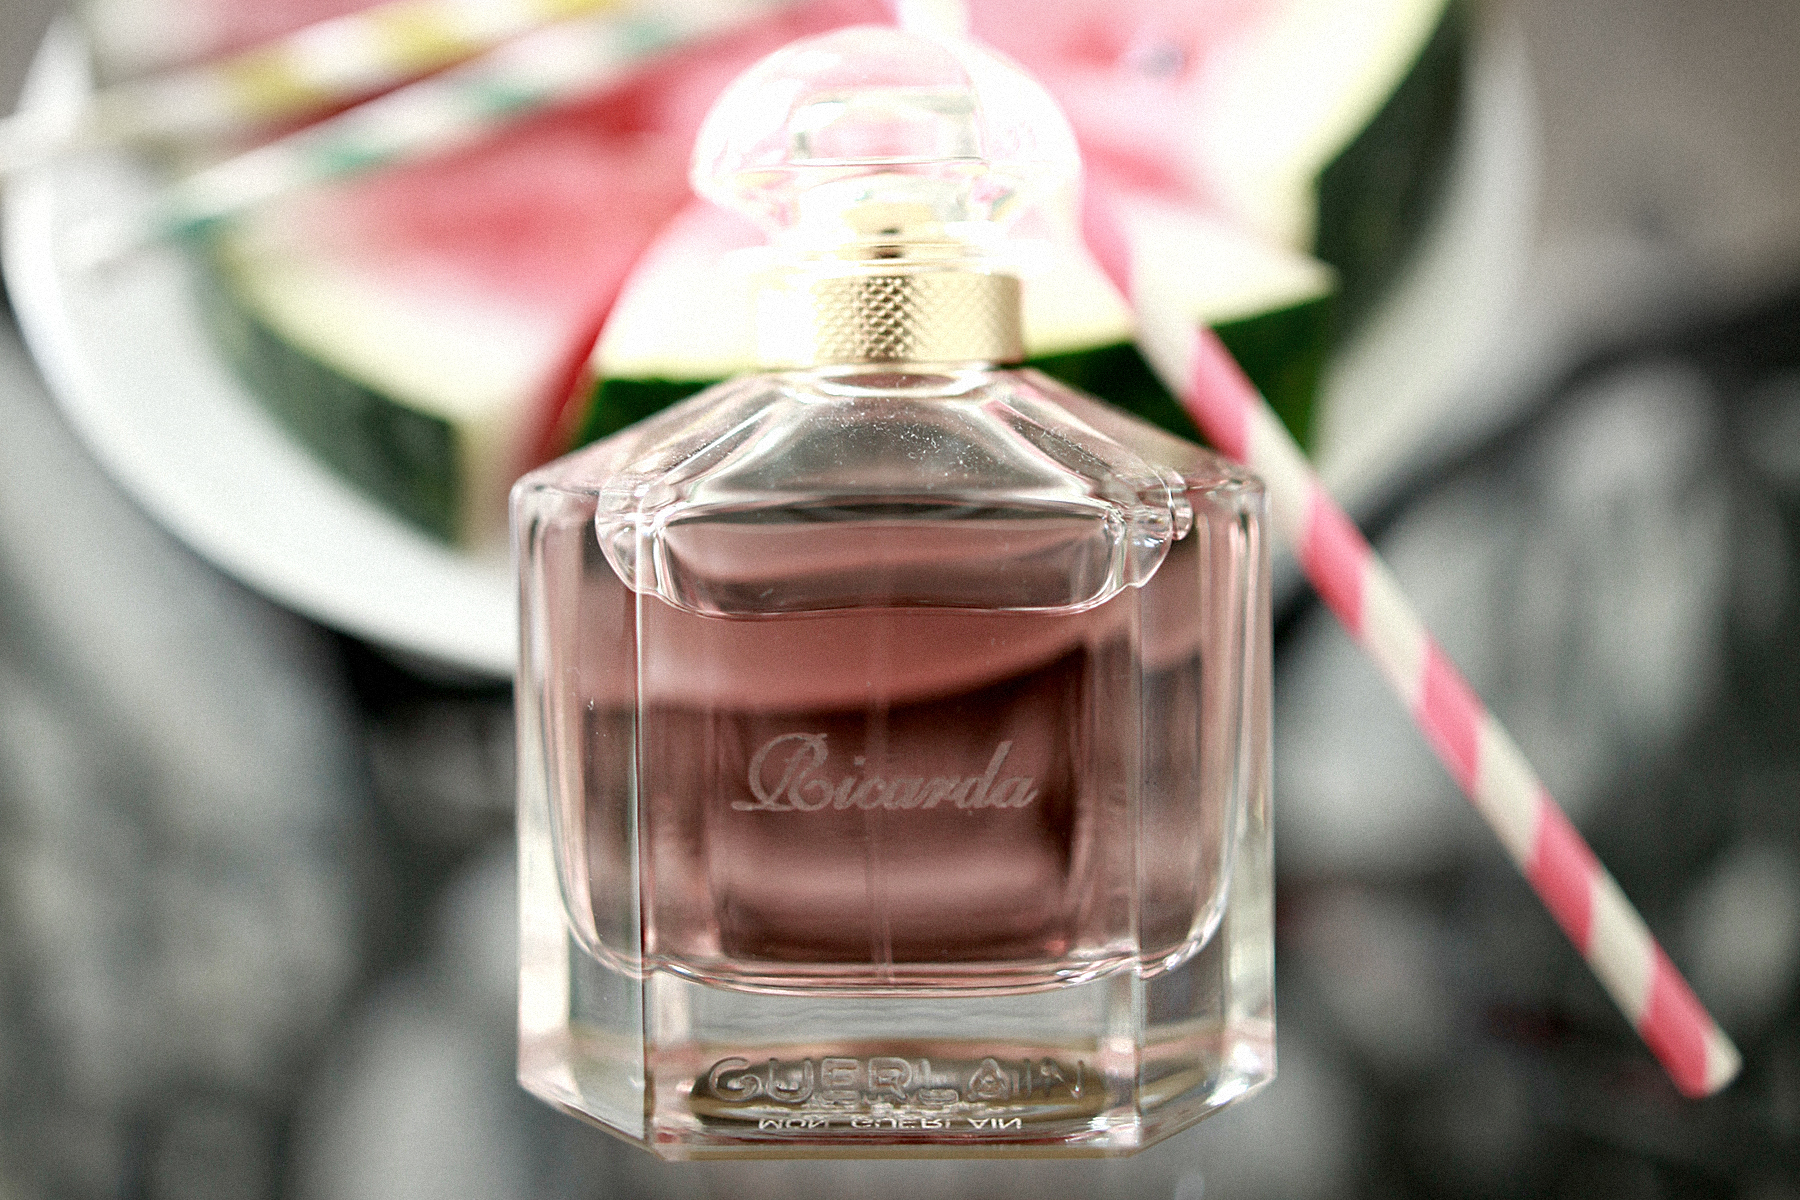 perfumes parfüms parfums summer edition thomas sabo happiness eau de karma elie saab ysl mon paris guerlain issey miyake l'occitane cats & dogs beautyblog beautyblogger düsseldorf germany luxury blog blogger ricarad schernus luxe blogger duft watermelon 5